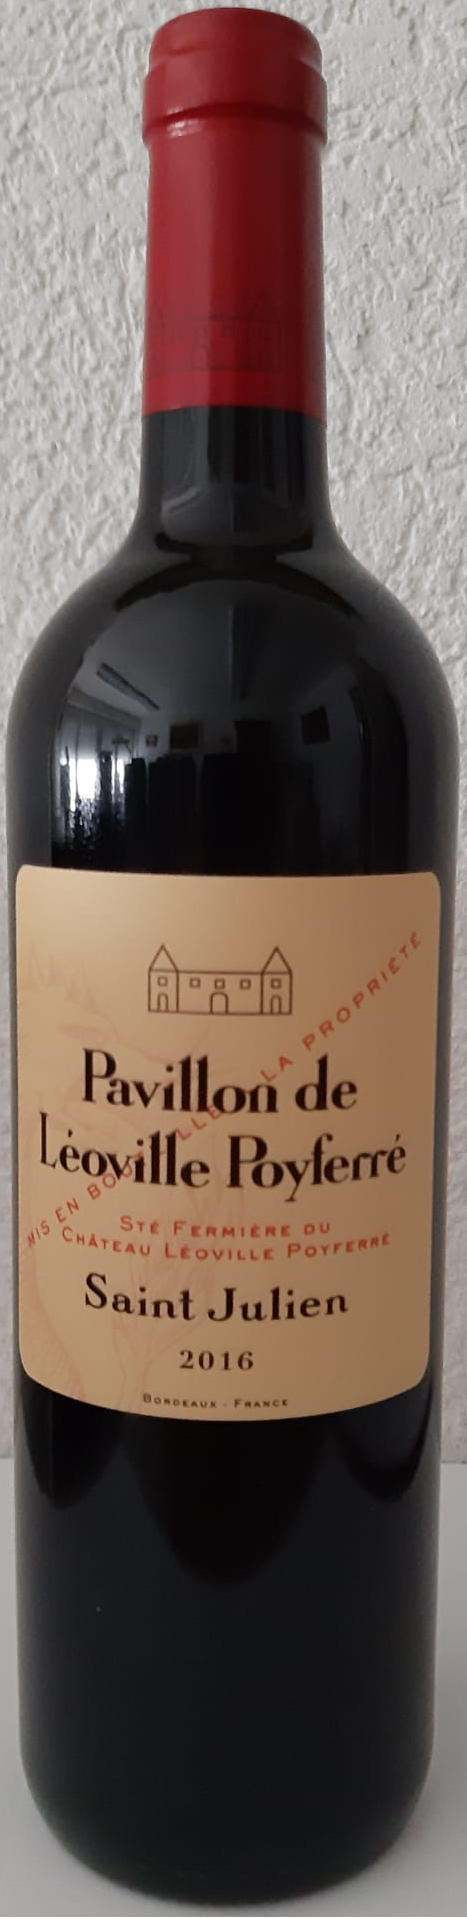 "Pavillon de Léoville Poyferré, St-Julien AC ""EN PROMOTION"" (James Suckling: 93/100) - 2016"